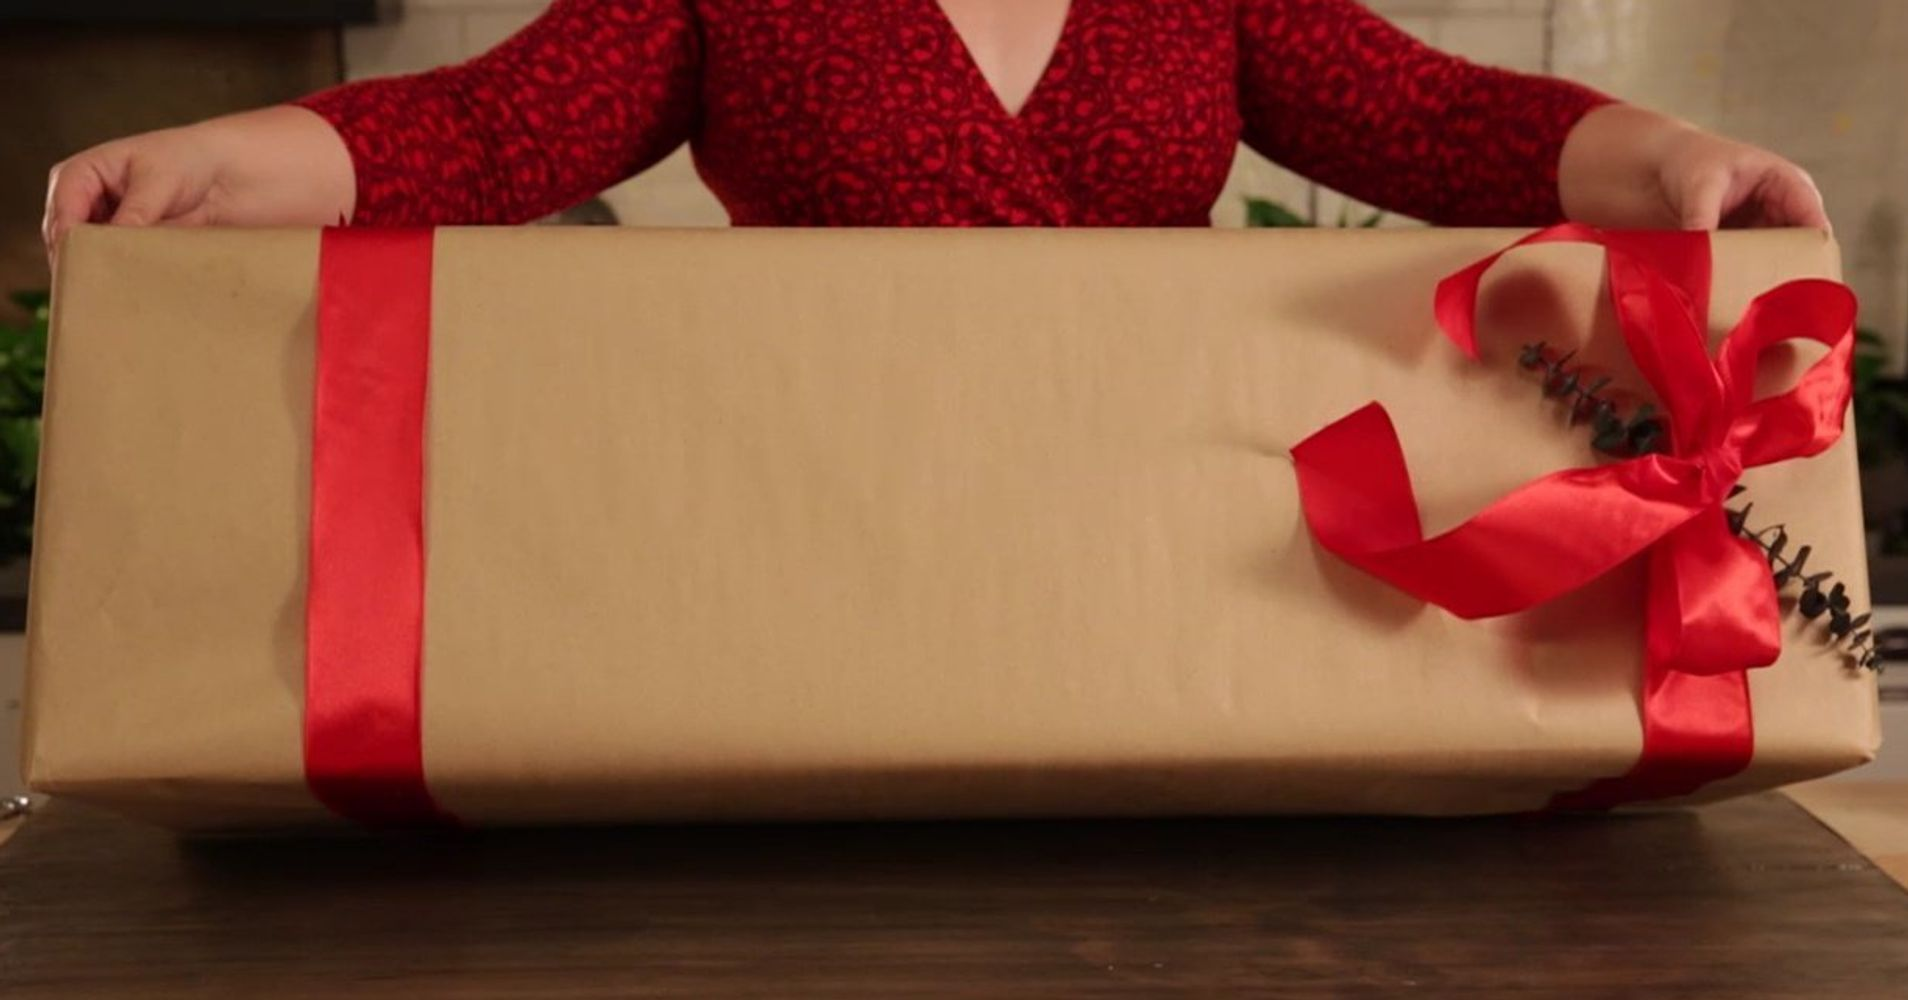 How To Wrap Oversized Gifts So They Look Sophisticated Not Sloppy